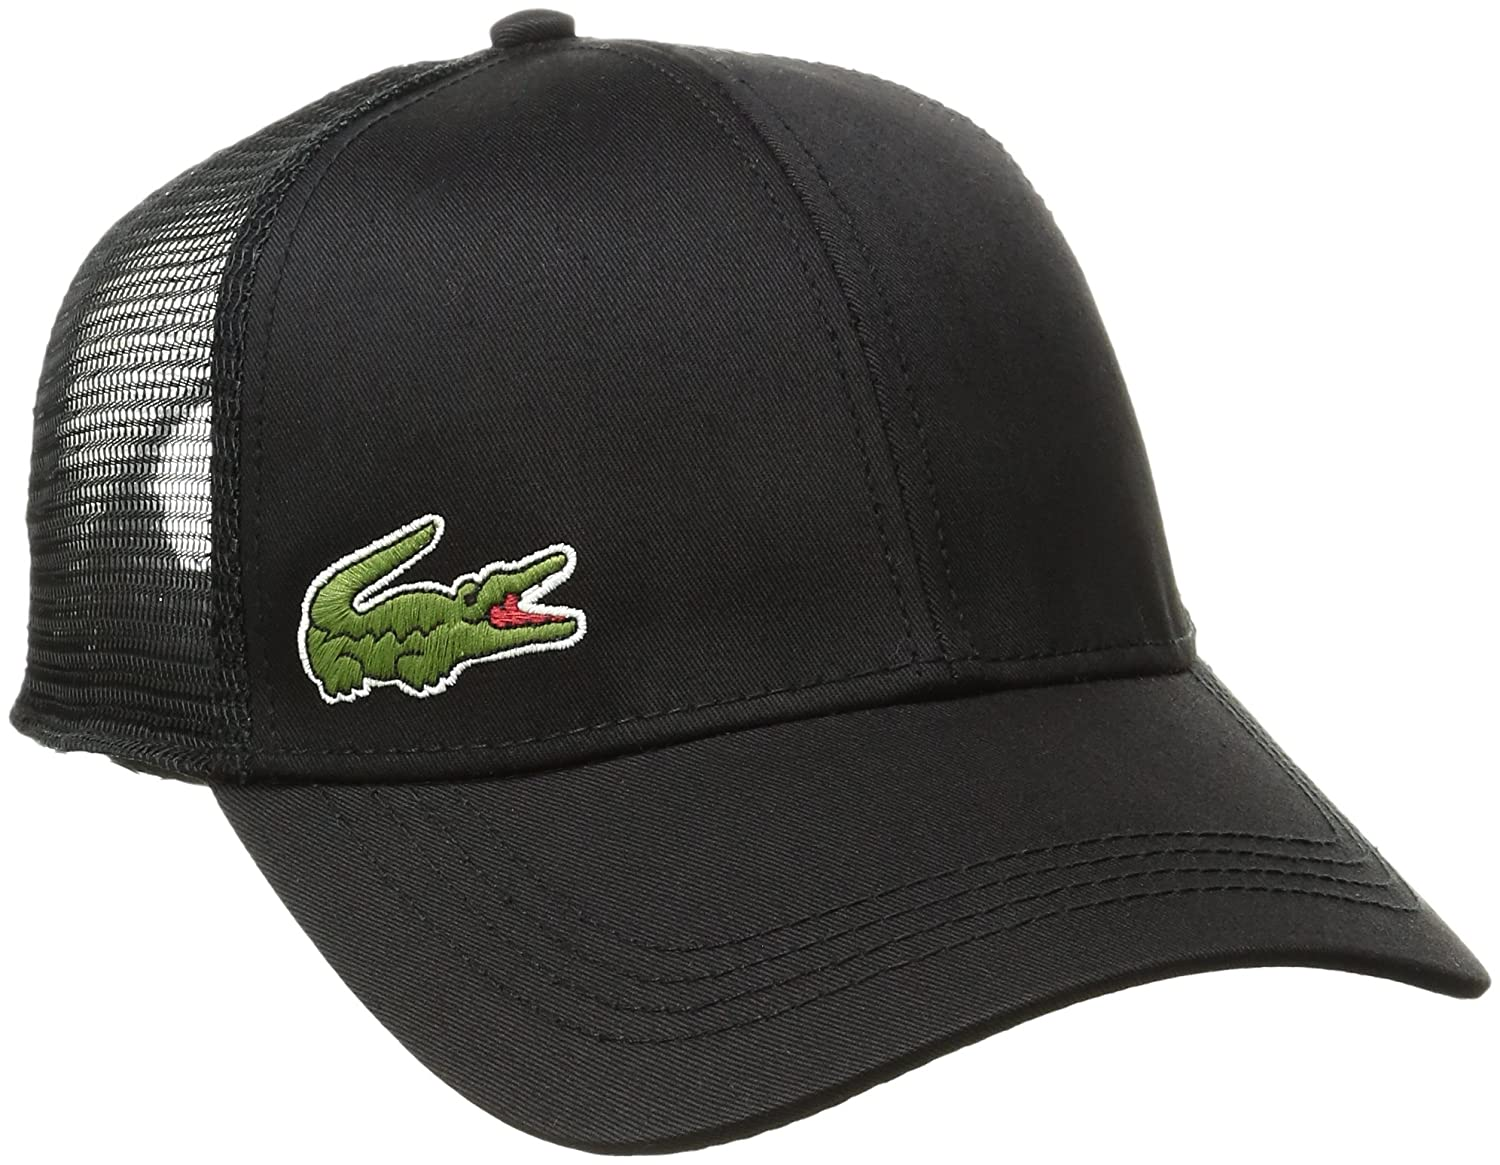 23cc916b5 Lacoste Mens Trucker Cap In Black One Size (Adult)  Amazon.co.uk  Clothing